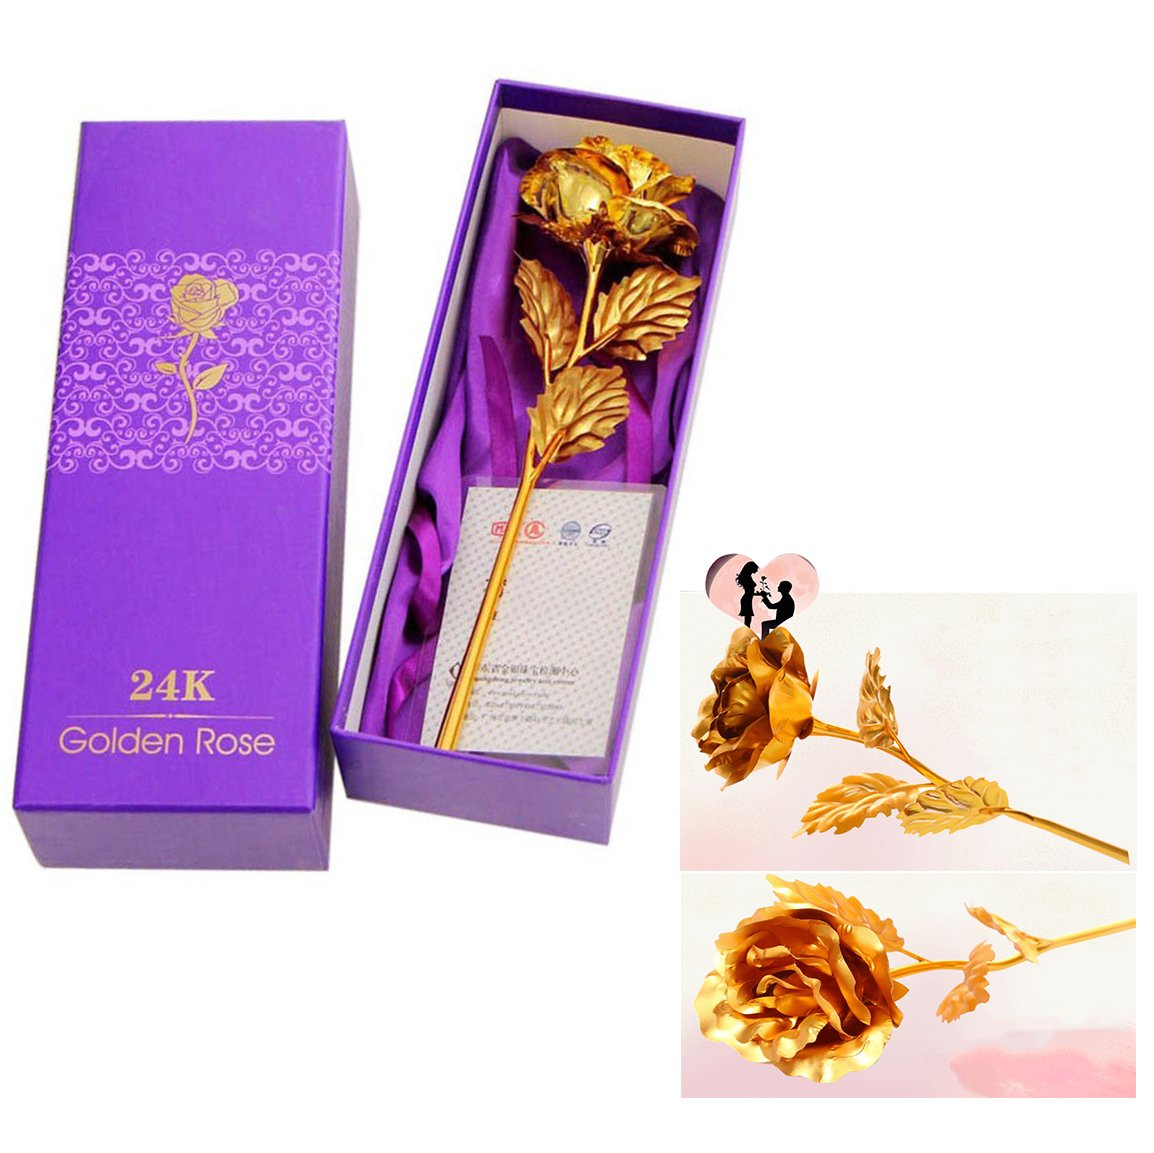 Cisixin Love Forever Long Stem 24k Gold Foil Trim Gold Rose Flower with Gift Box, Bouquet of Flower for Valentine's Day, Mother's Day, Anniversary, Birthday Gift, Wedding Home Decor DIY Mother' s Day